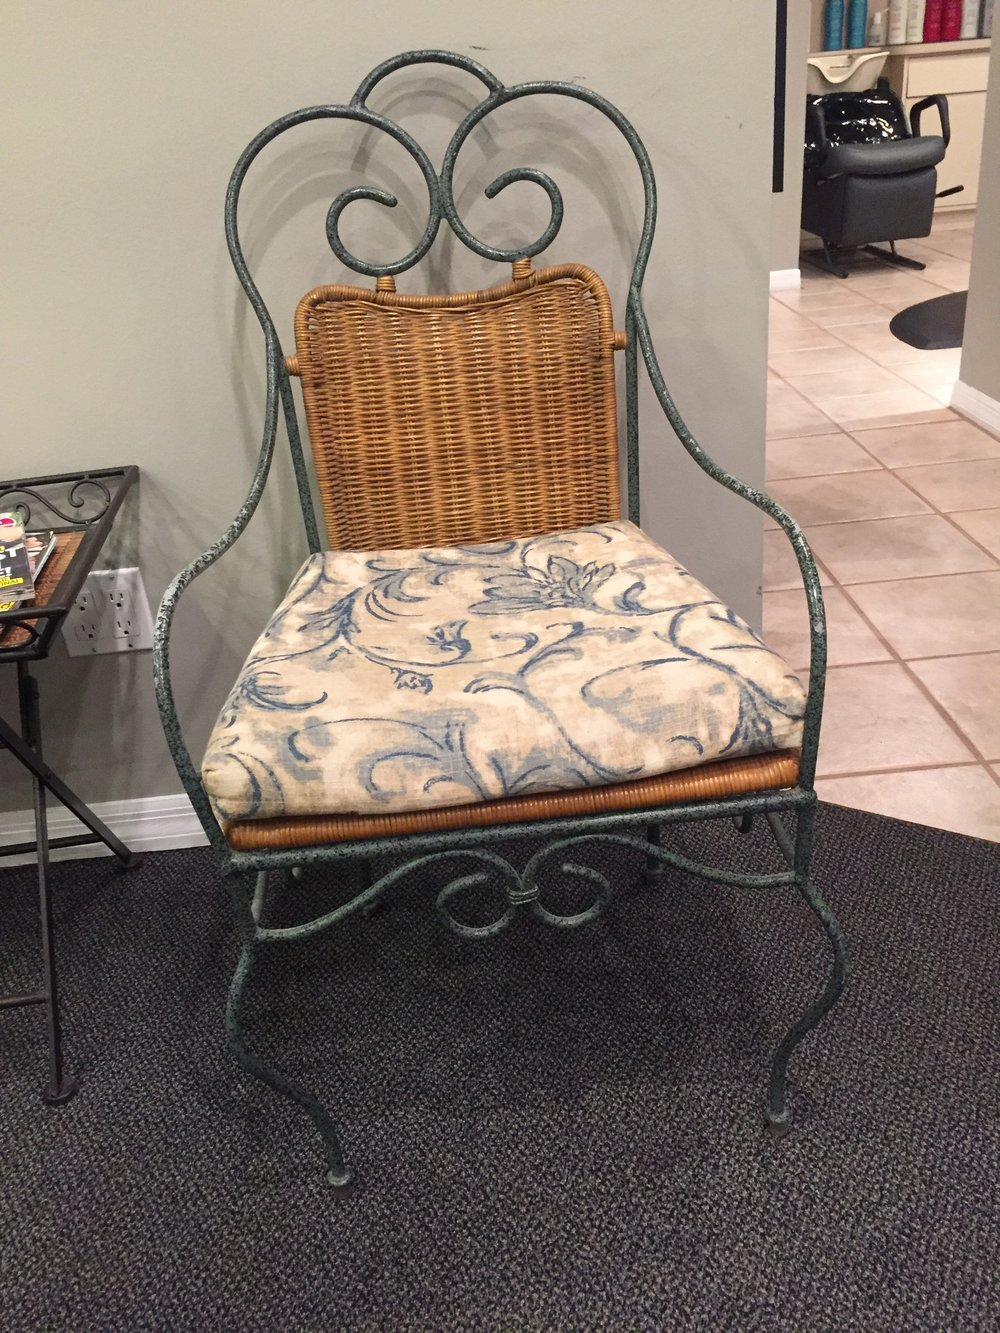 Iron & Wicker Chairs - $30 (each)  3 available